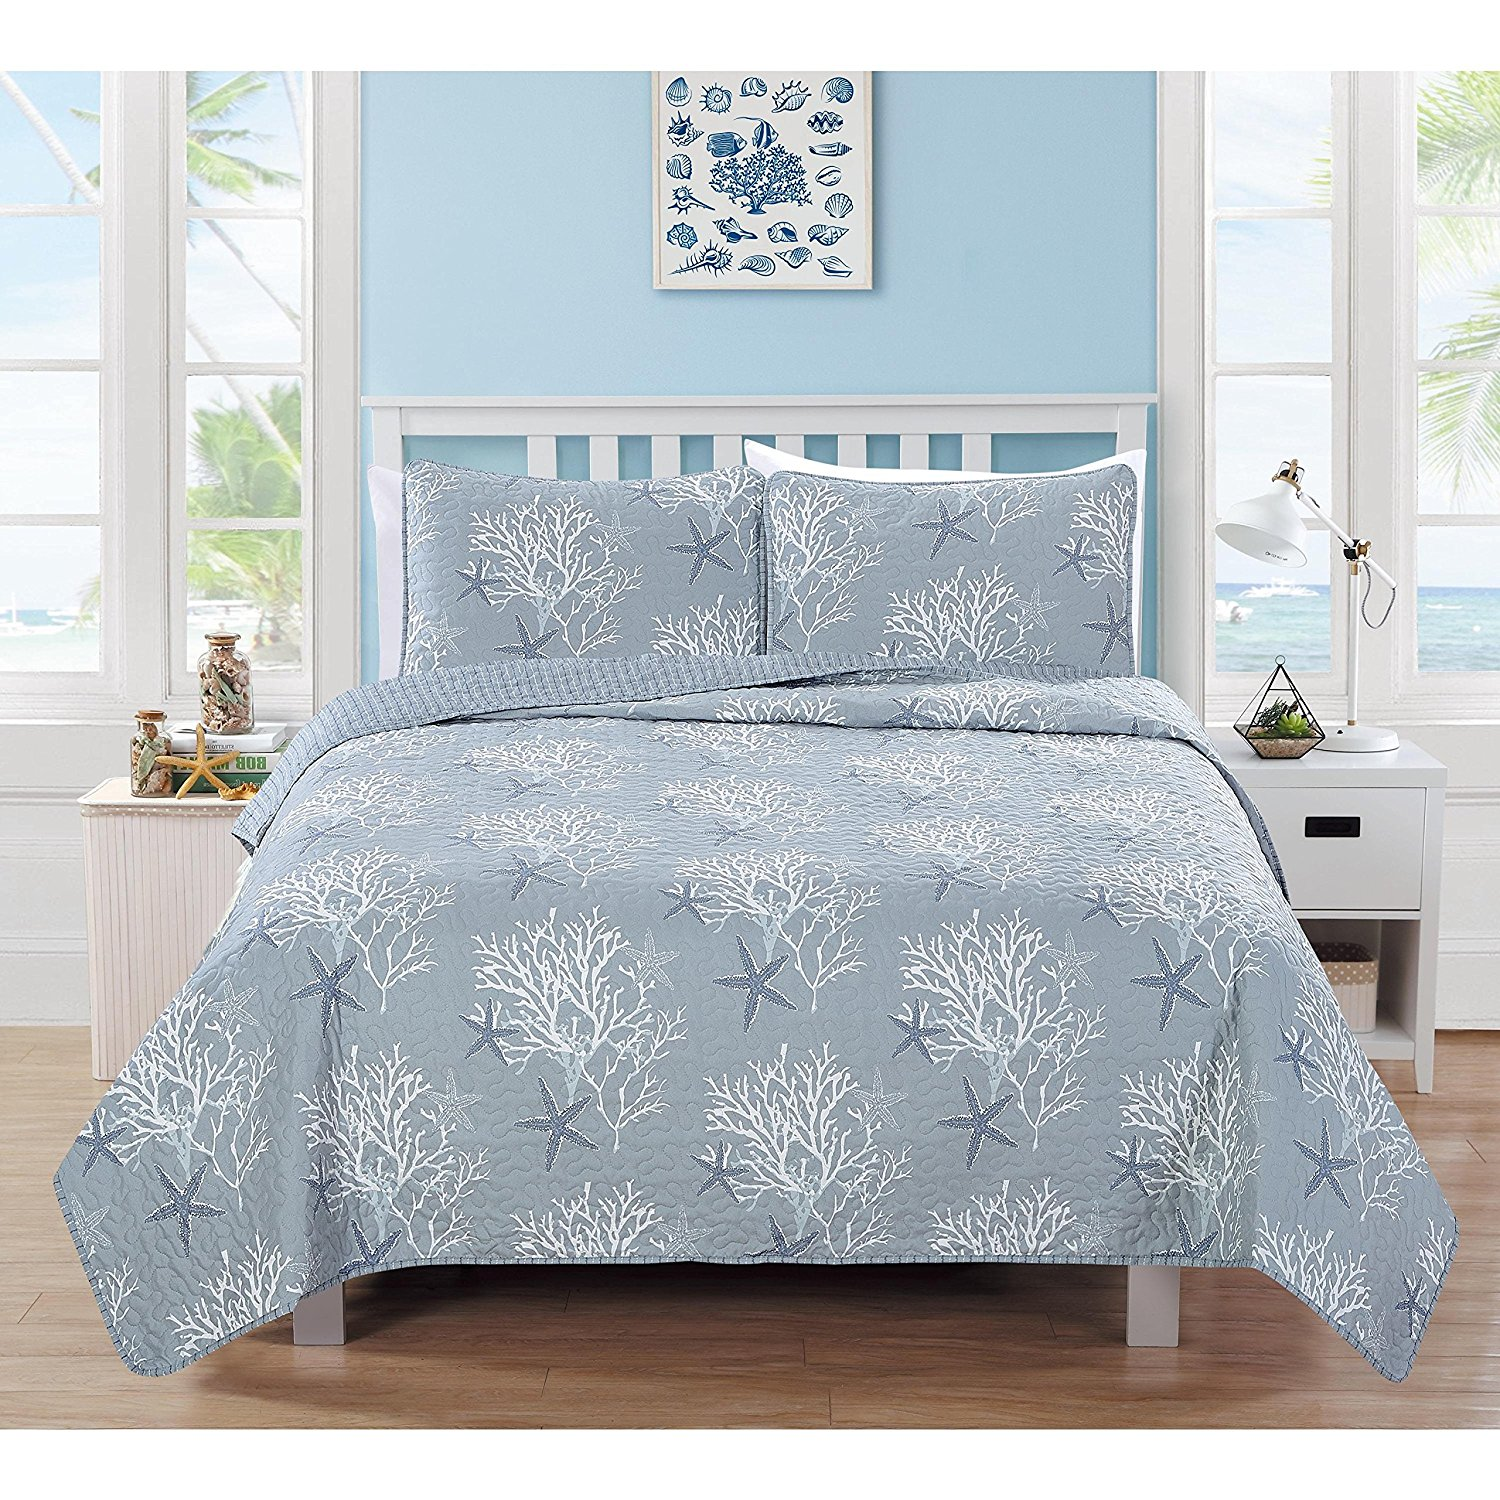 MPN 3 Piece Beautiful Blue White Full Queen Quilt Set, Beach Themed Reversible Bedding Seaside Coral Ocean Cottage Cabin Vintage Trendy Chic Water Coastal Starfish, Cotton, Polyester